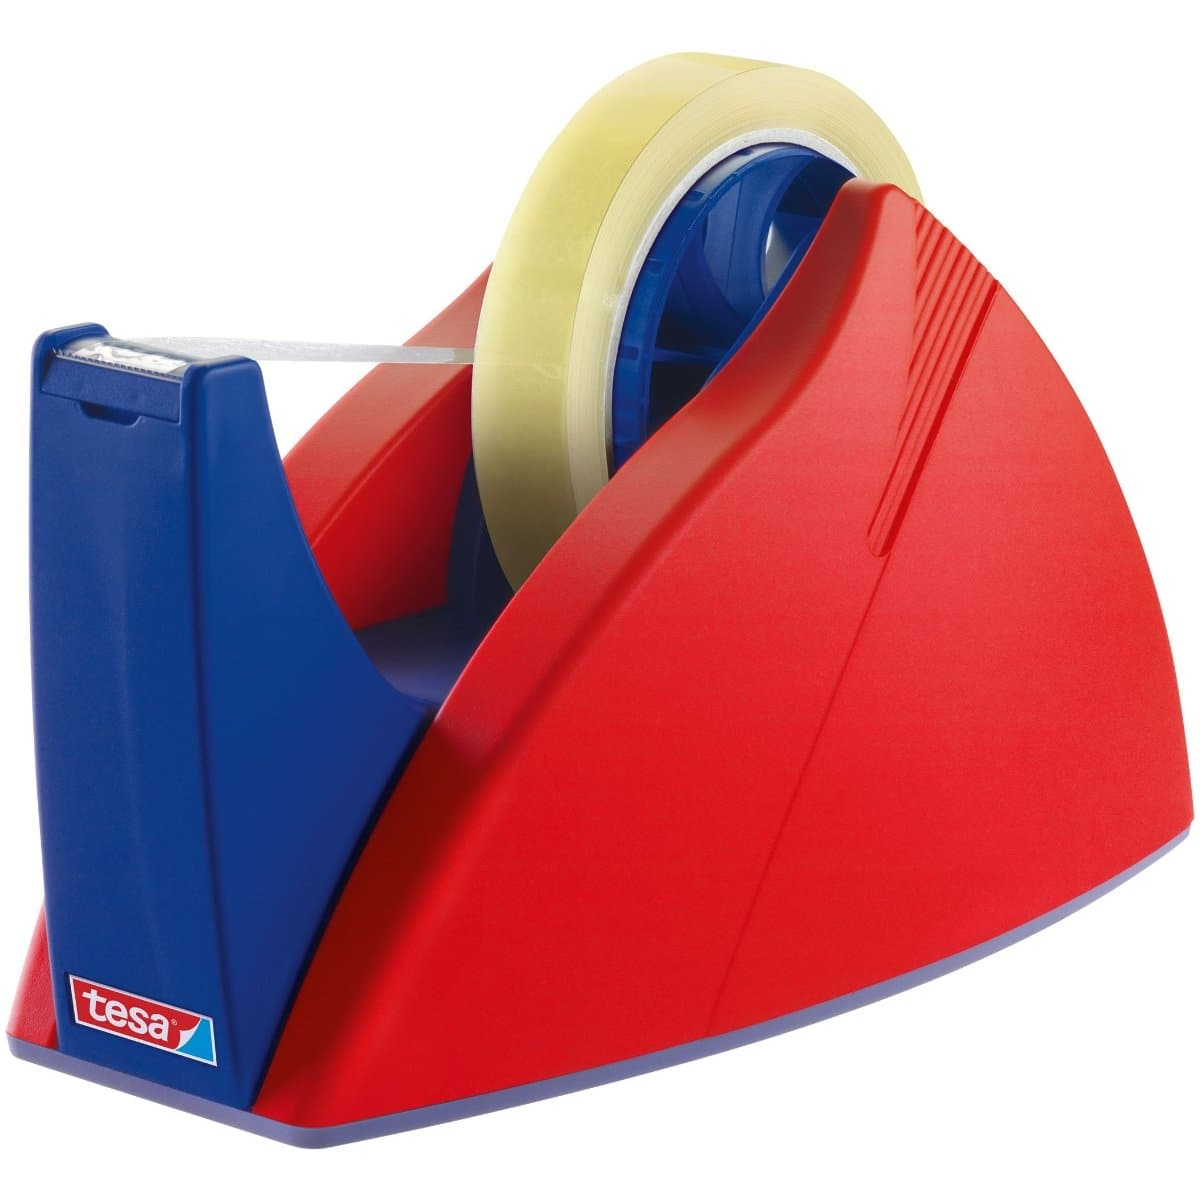 tesa EASY CUT PROFESSIONAL, Desk Dispenser for Tapes up to 25mm x 66m, Red/Blue